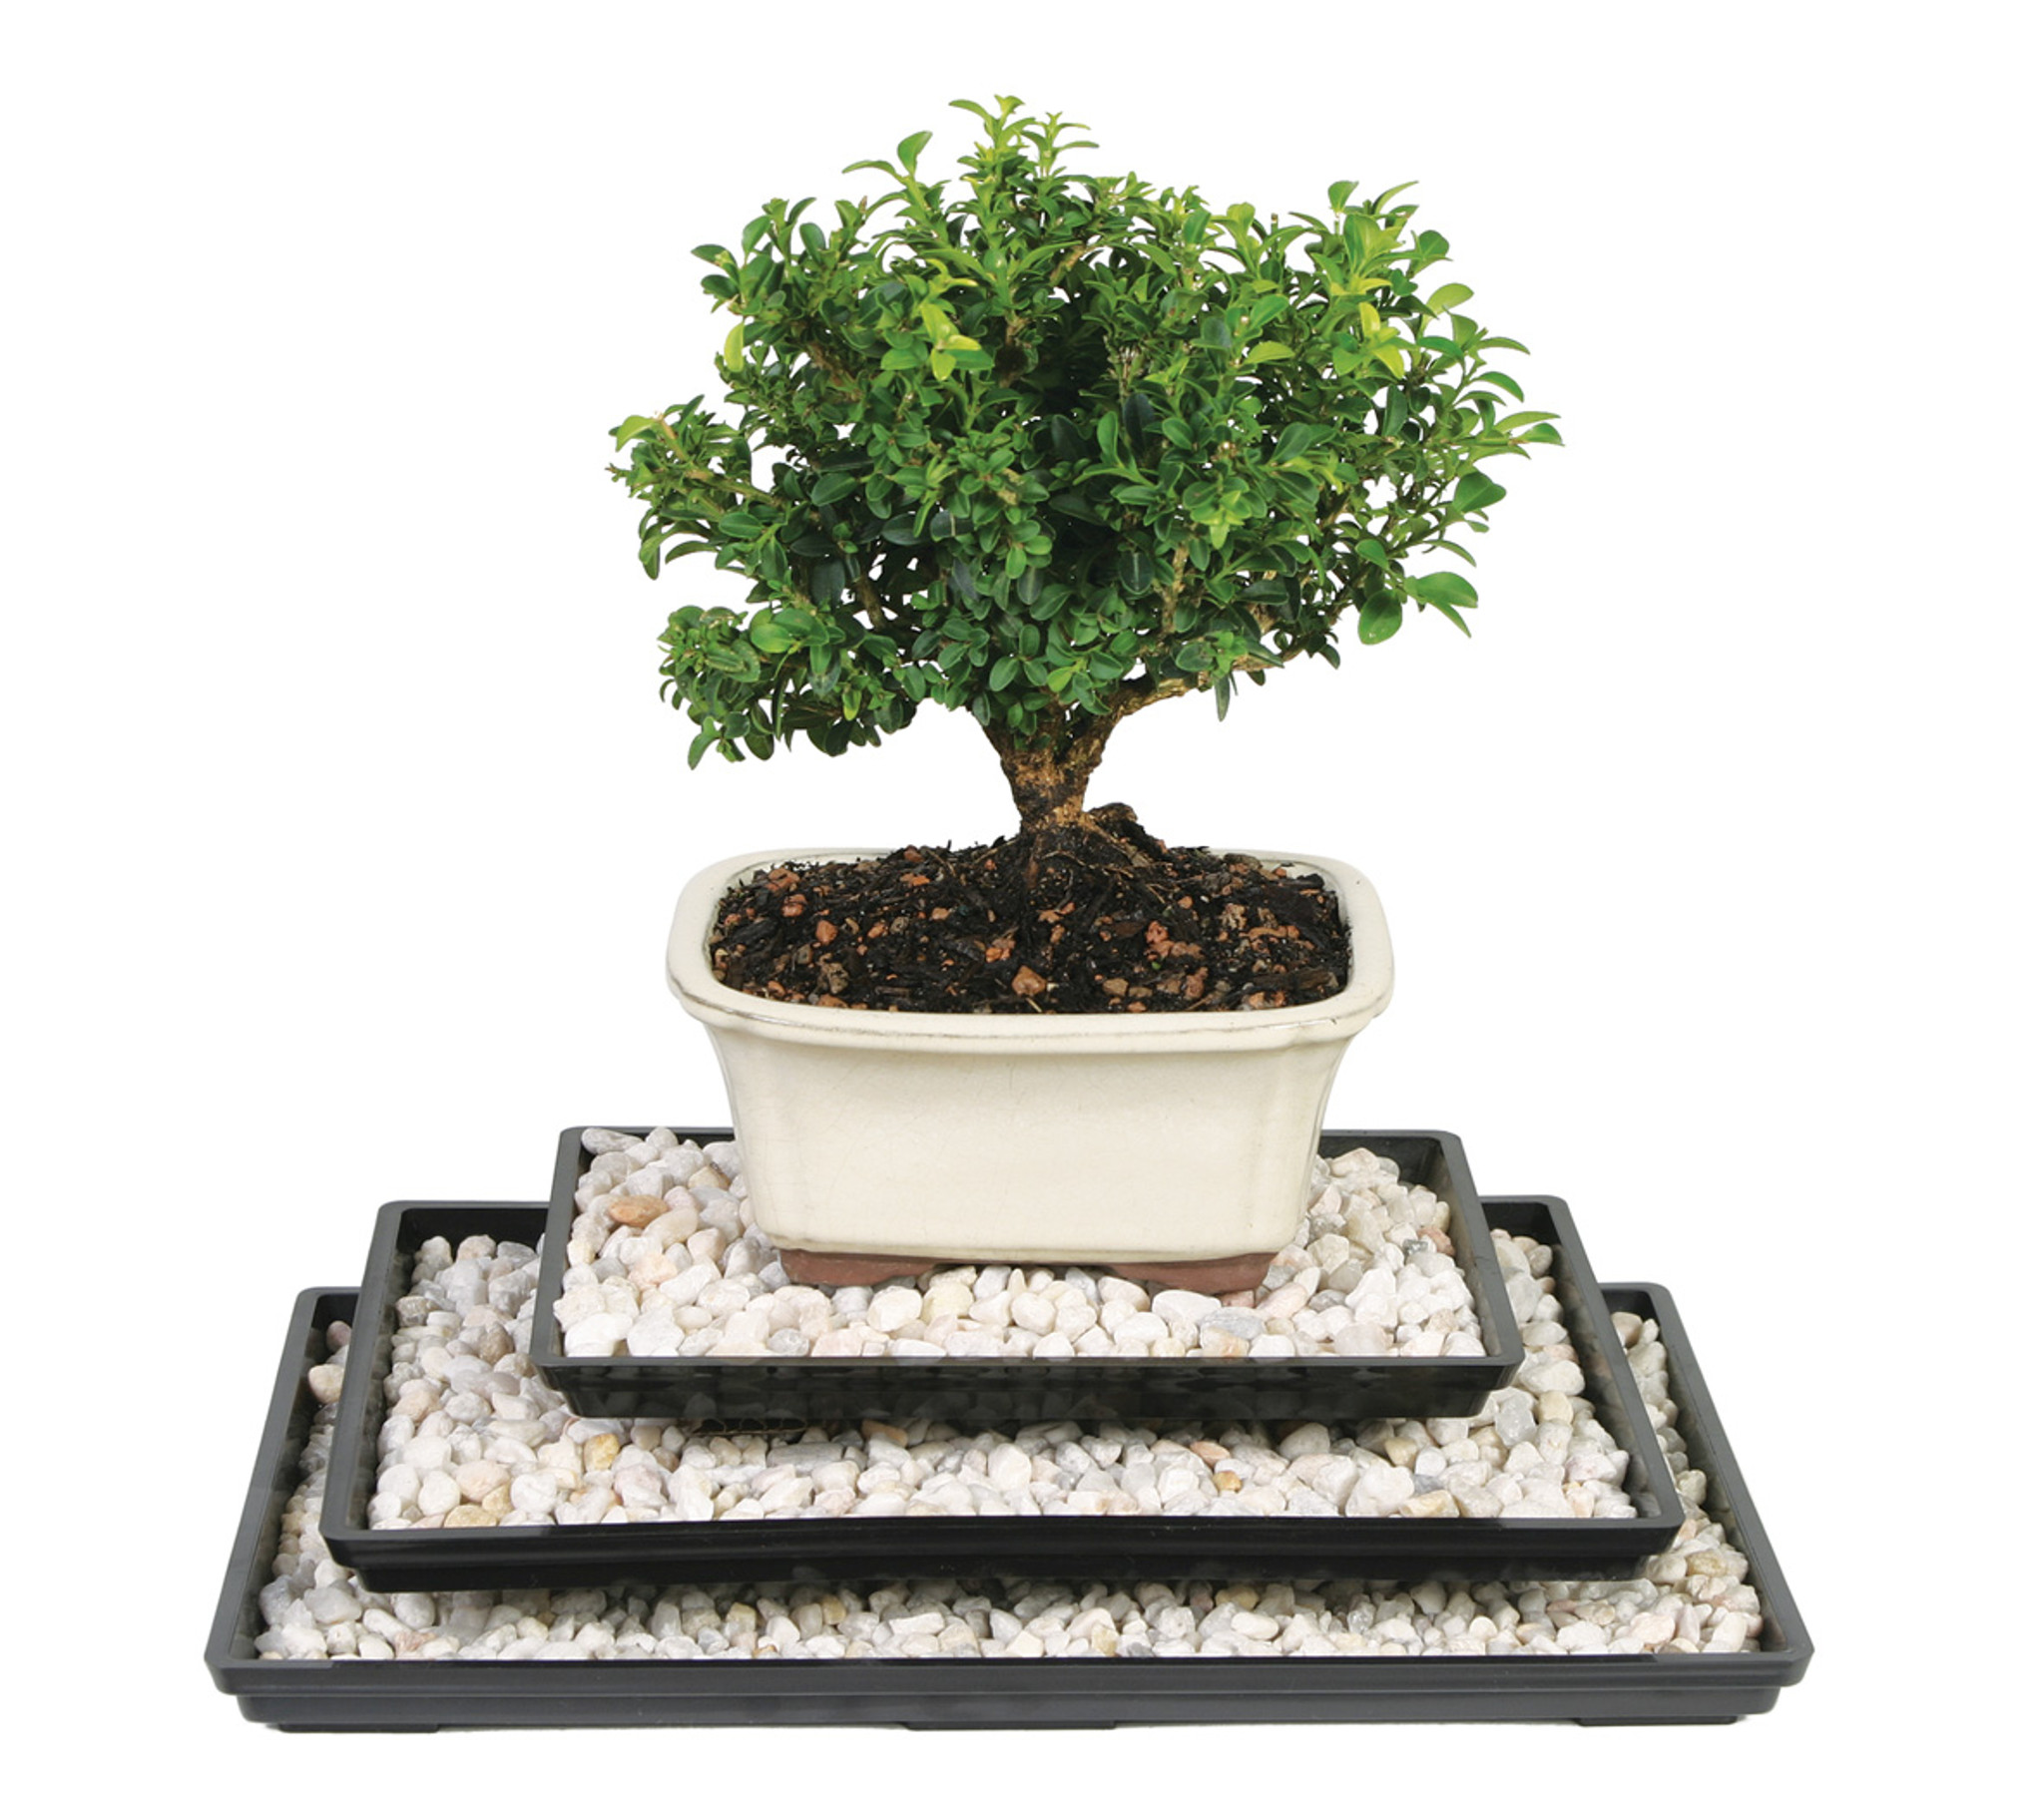 11 Bonsai Drip Tray Bonsai Tree Humidity Tray Brussel S Brussel S Bonsai